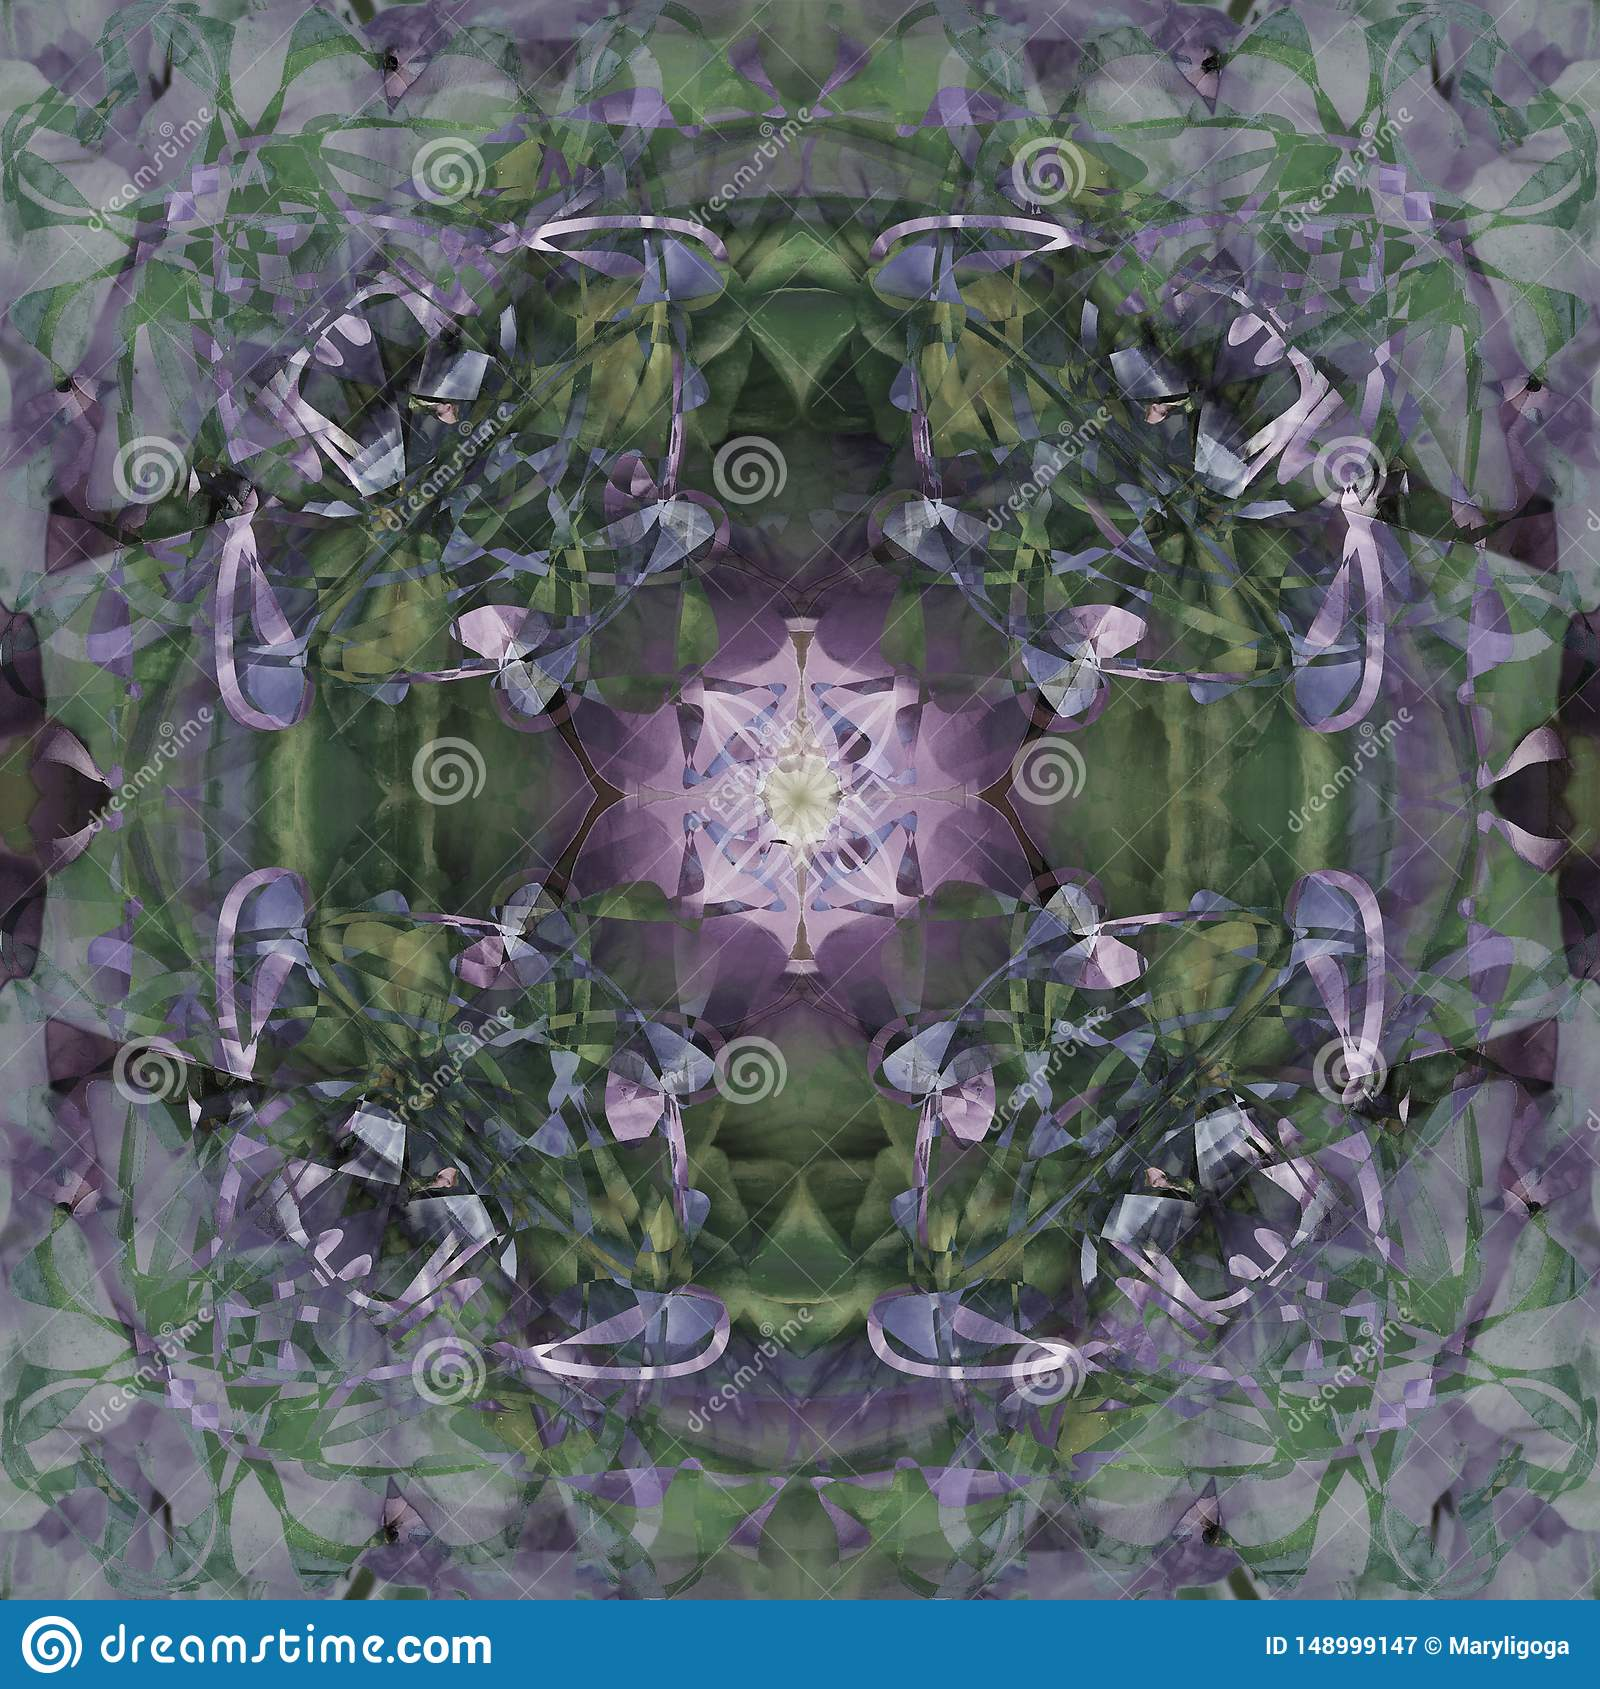 CLOVER FLOWER MANDALA, VINTAGE IMAGE IN GREEN, GRAY, PURPLE, WHITE, ABSTRACT BACKGROUND